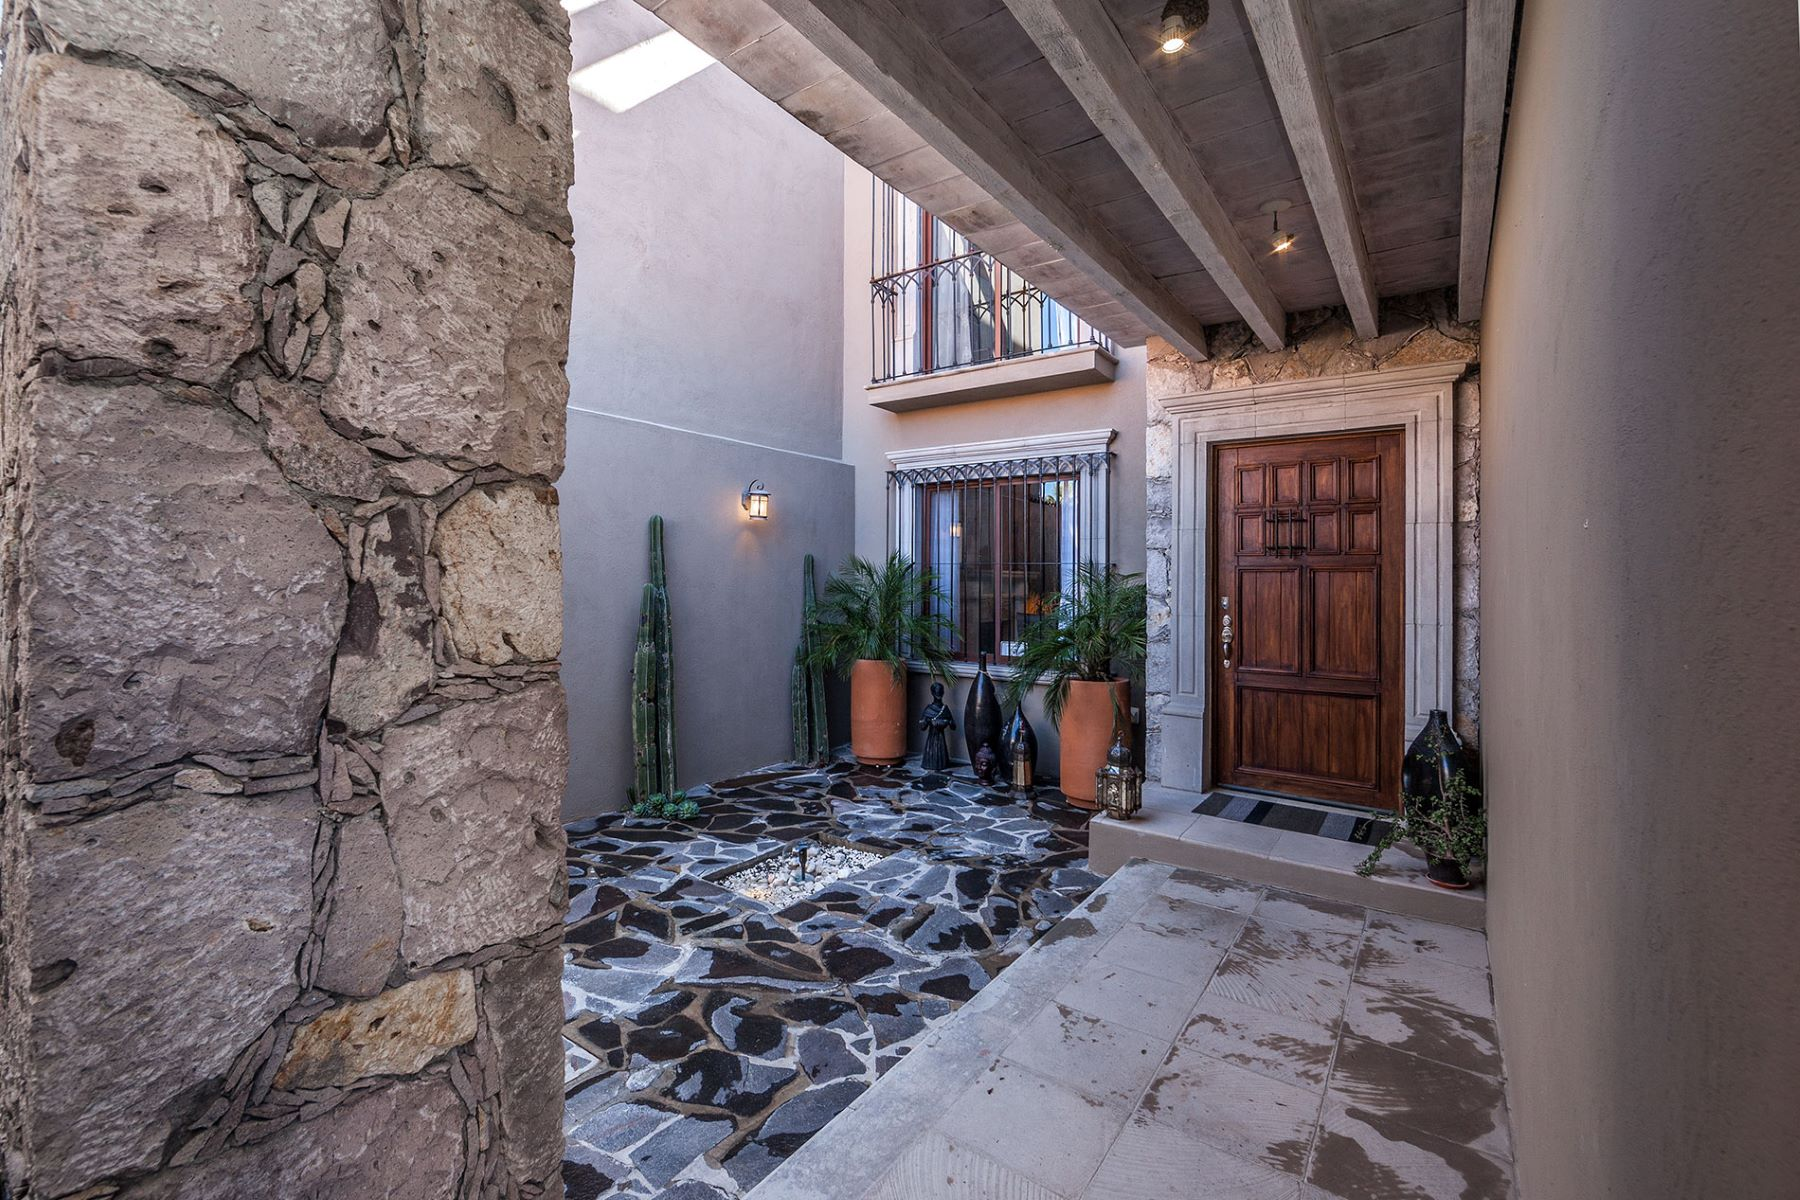 Additional photo for property listing at Tormentosa Tormentosa 14 Paseo Real San Miguel De Allende, Guanajuato 37700 Mexico